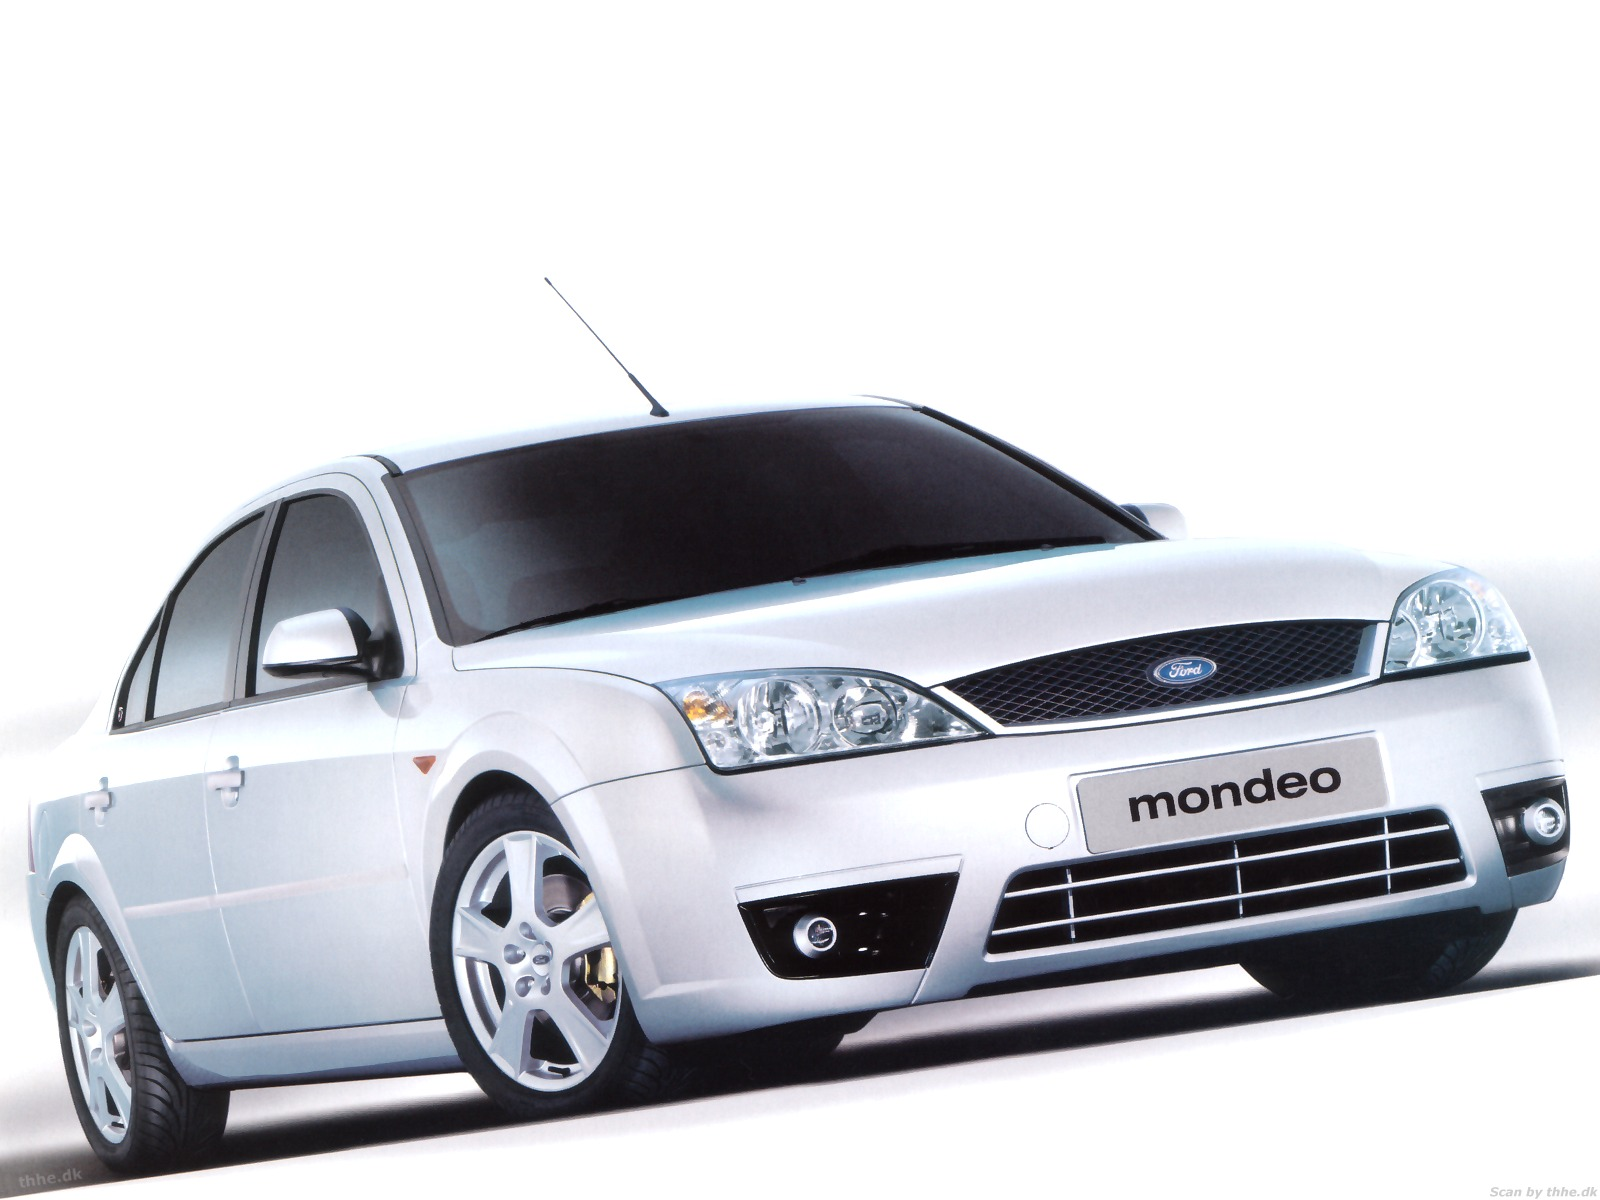 ford mondeo service and repair manual free download repair service rh  vehiclepdf com ford mondeo mk3 workshop manual ford mondeo mk3 service and  repair ...